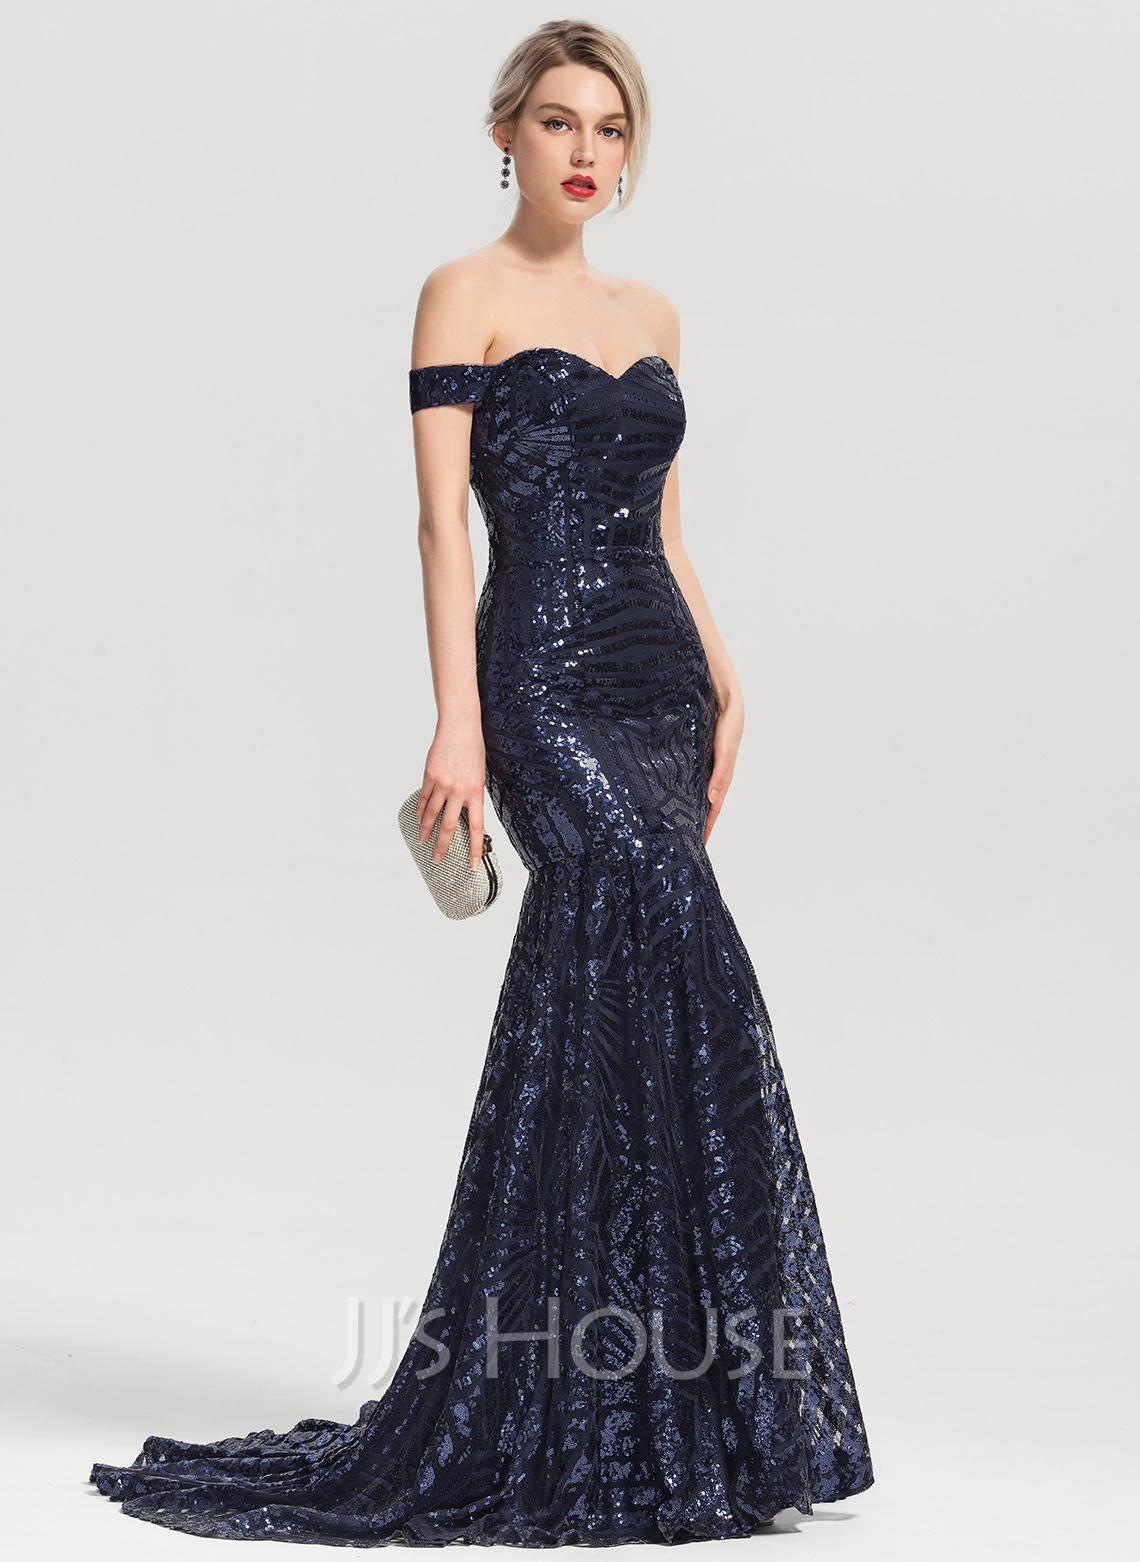 a3e27f45 Trumpet/Mermaid Off-the-Shoulder Sweep Train Sequined Evening Dress.  Loading zoom